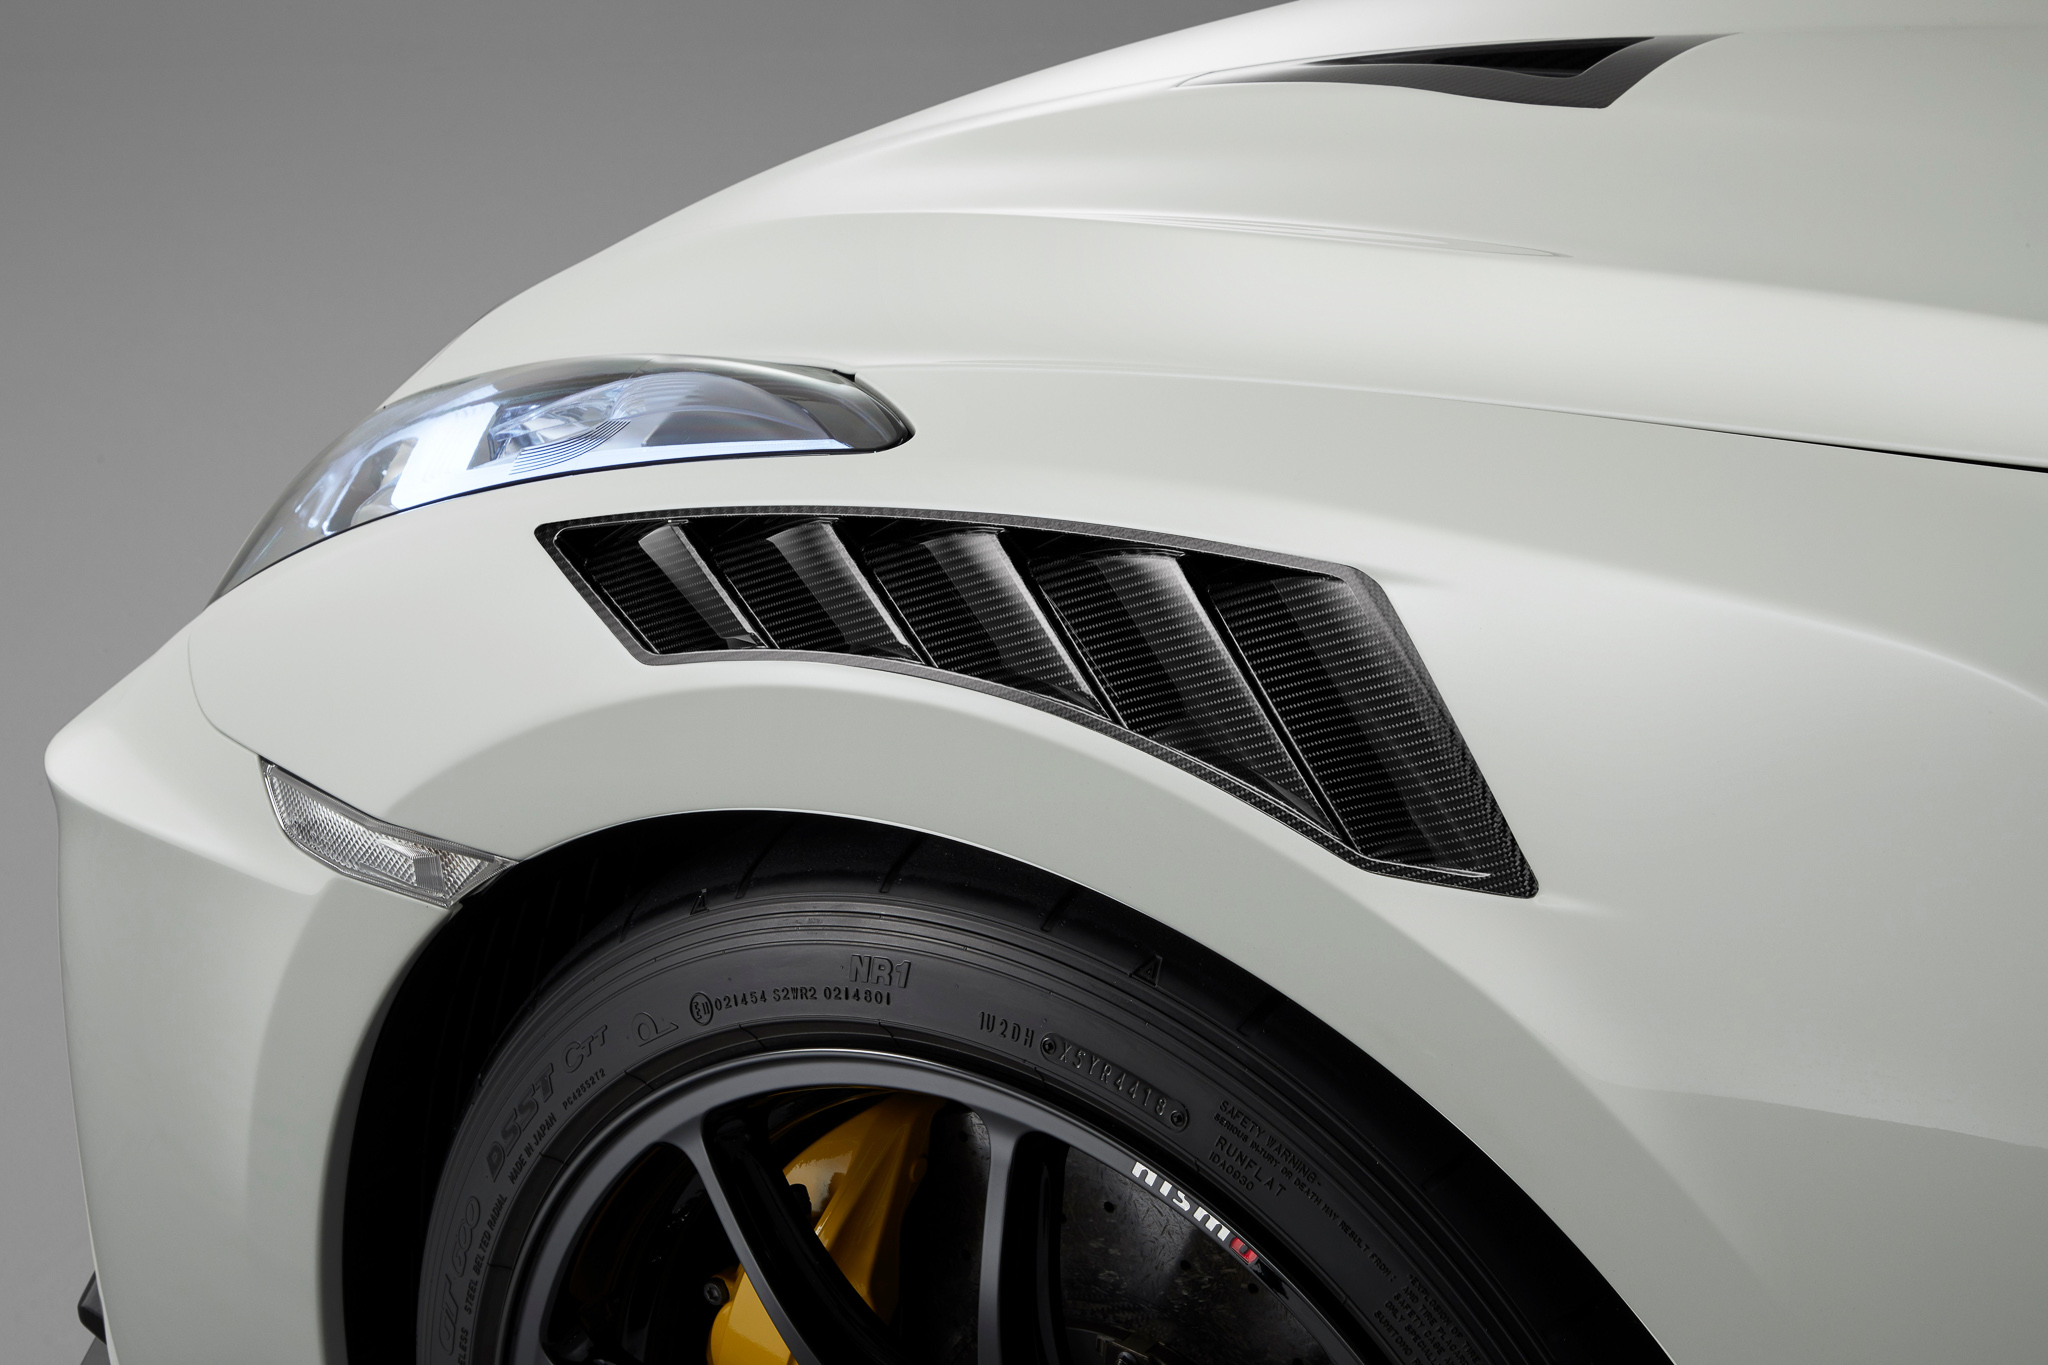 Extensive application of carbon fibre reduces overall weight